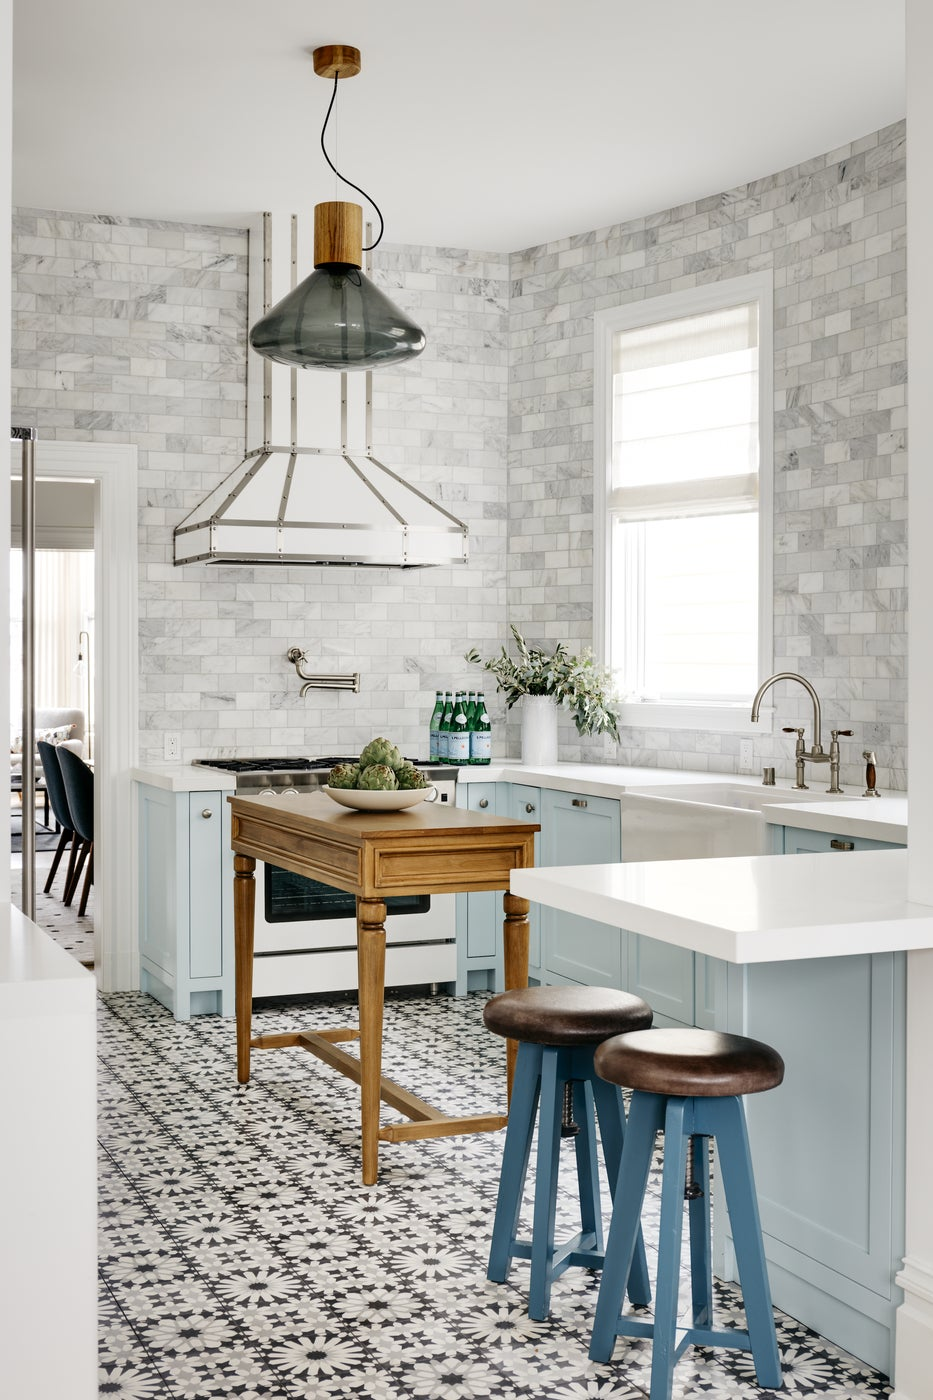 Light blue transitional kitchen with patterned tile floors and white appliances